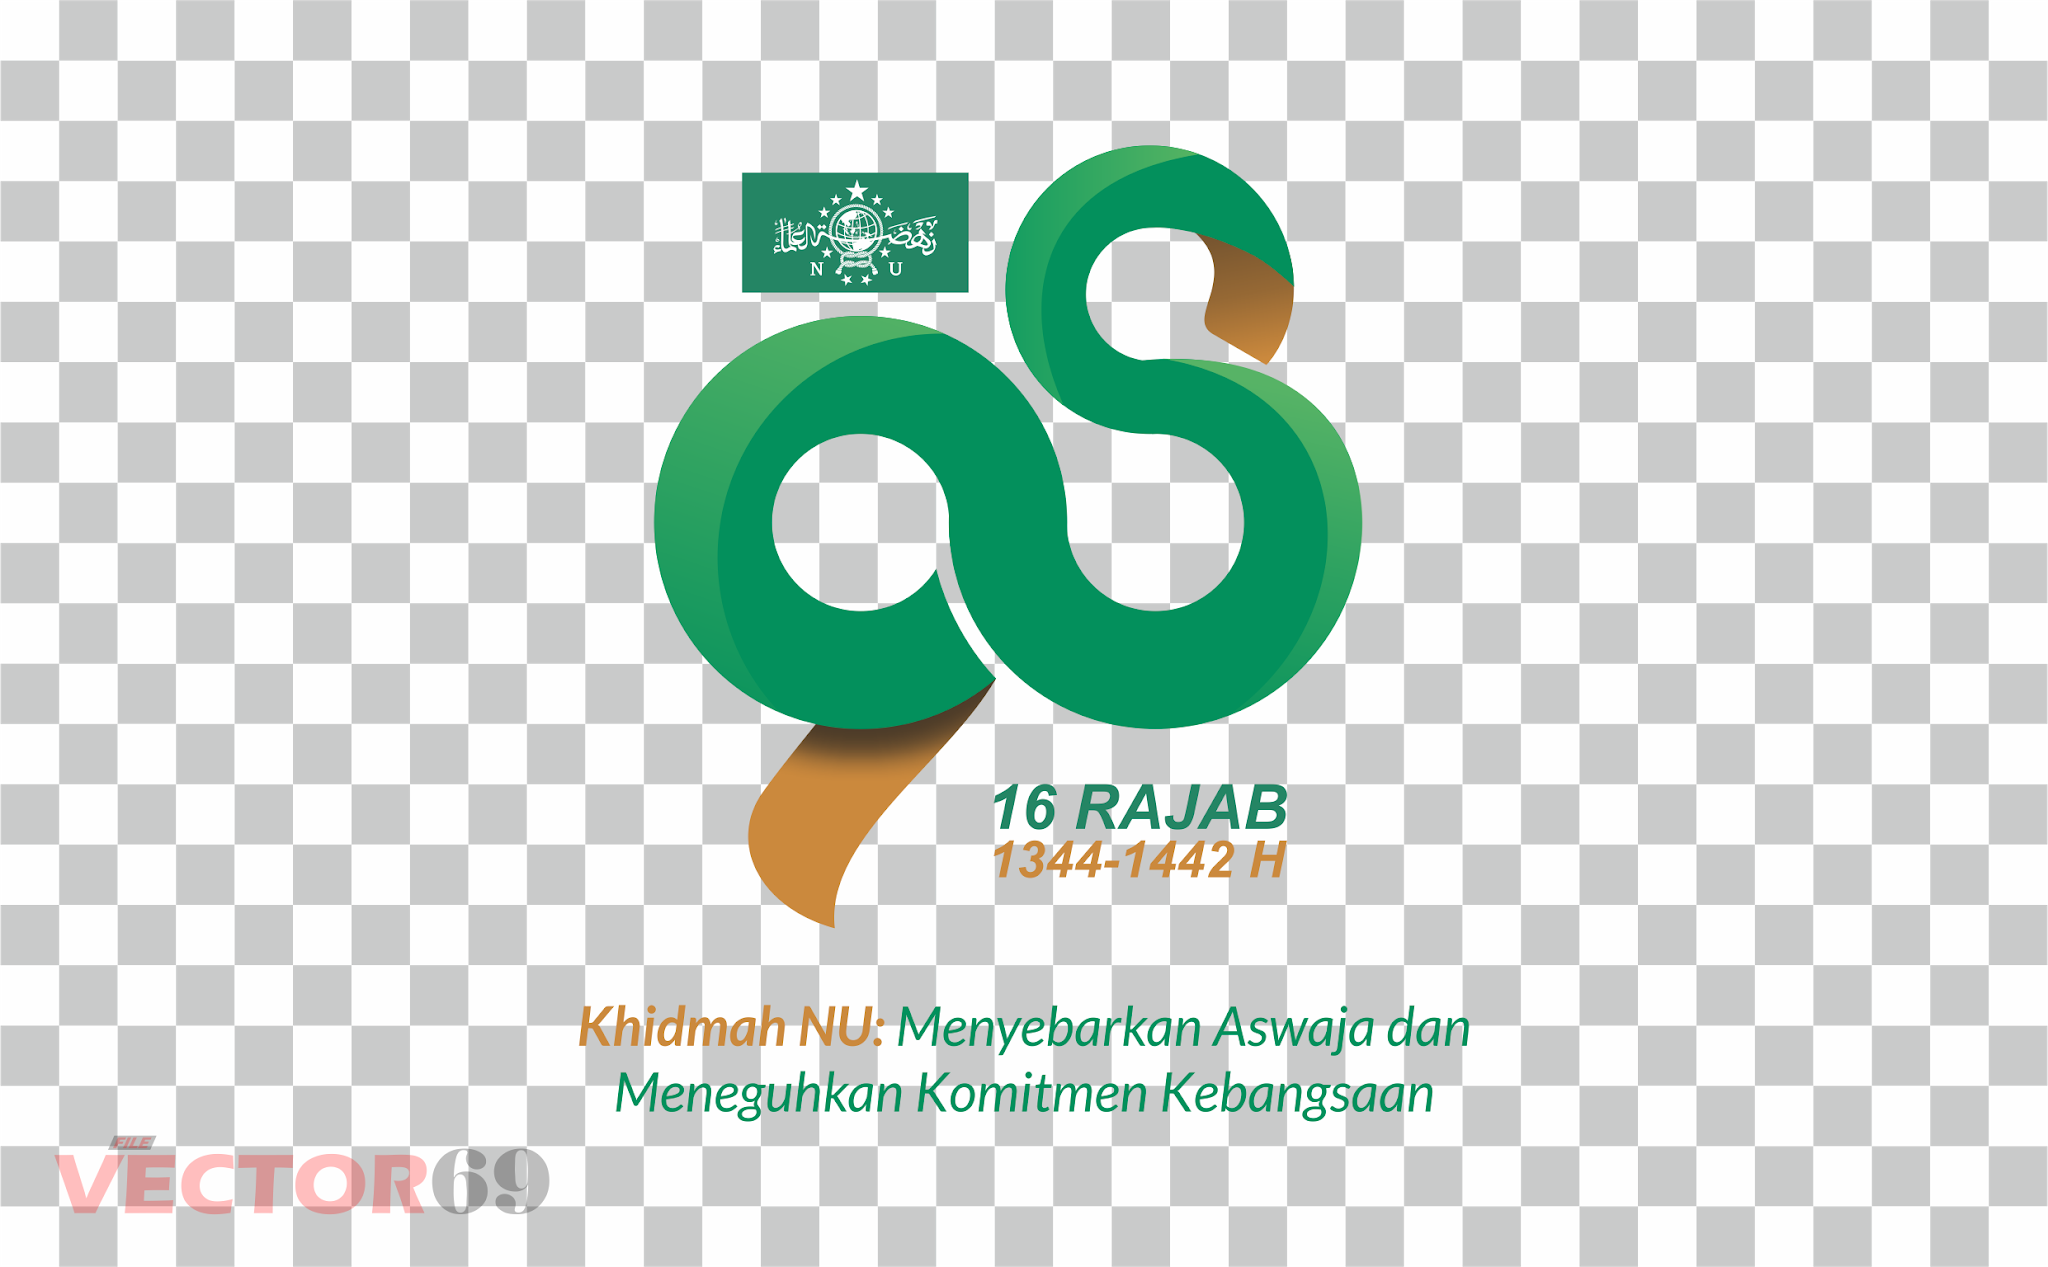 Harlah NU ke-98 16 Rajab 1442 H Tahun 2021 Logo - Download Vector File PNG (Portable Network Graphics)